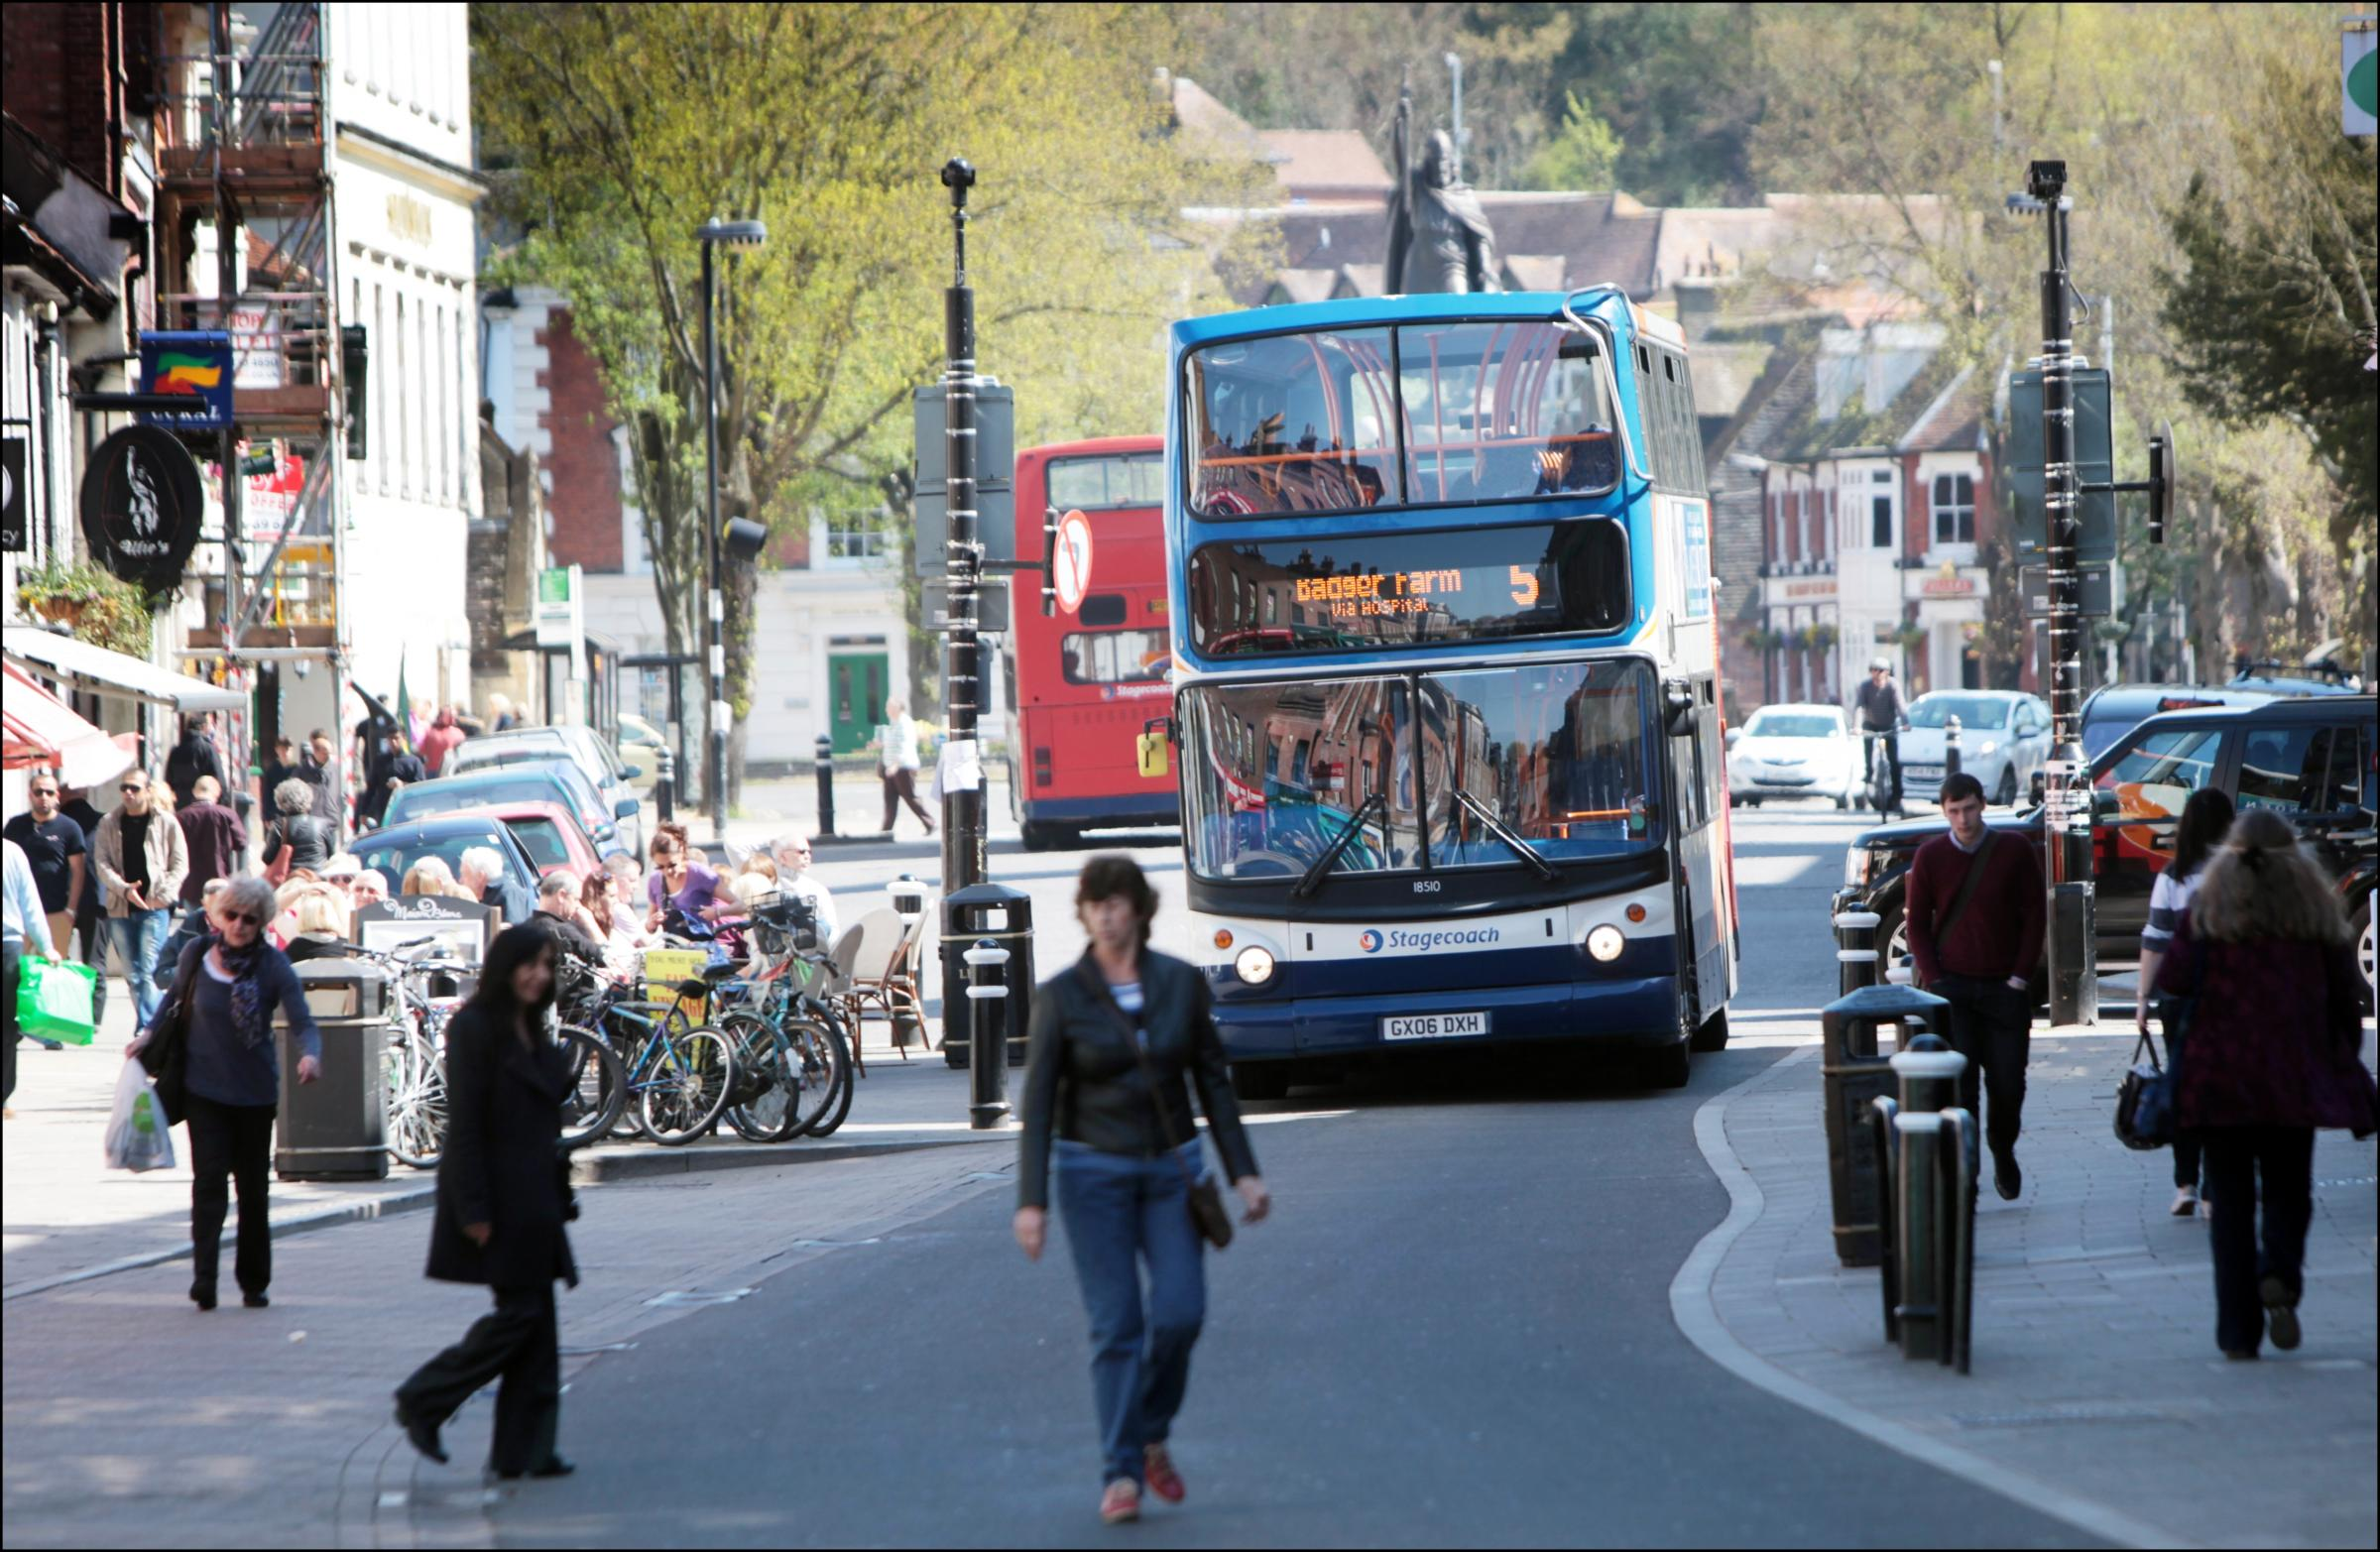 Bus firm clashes with city centre developers